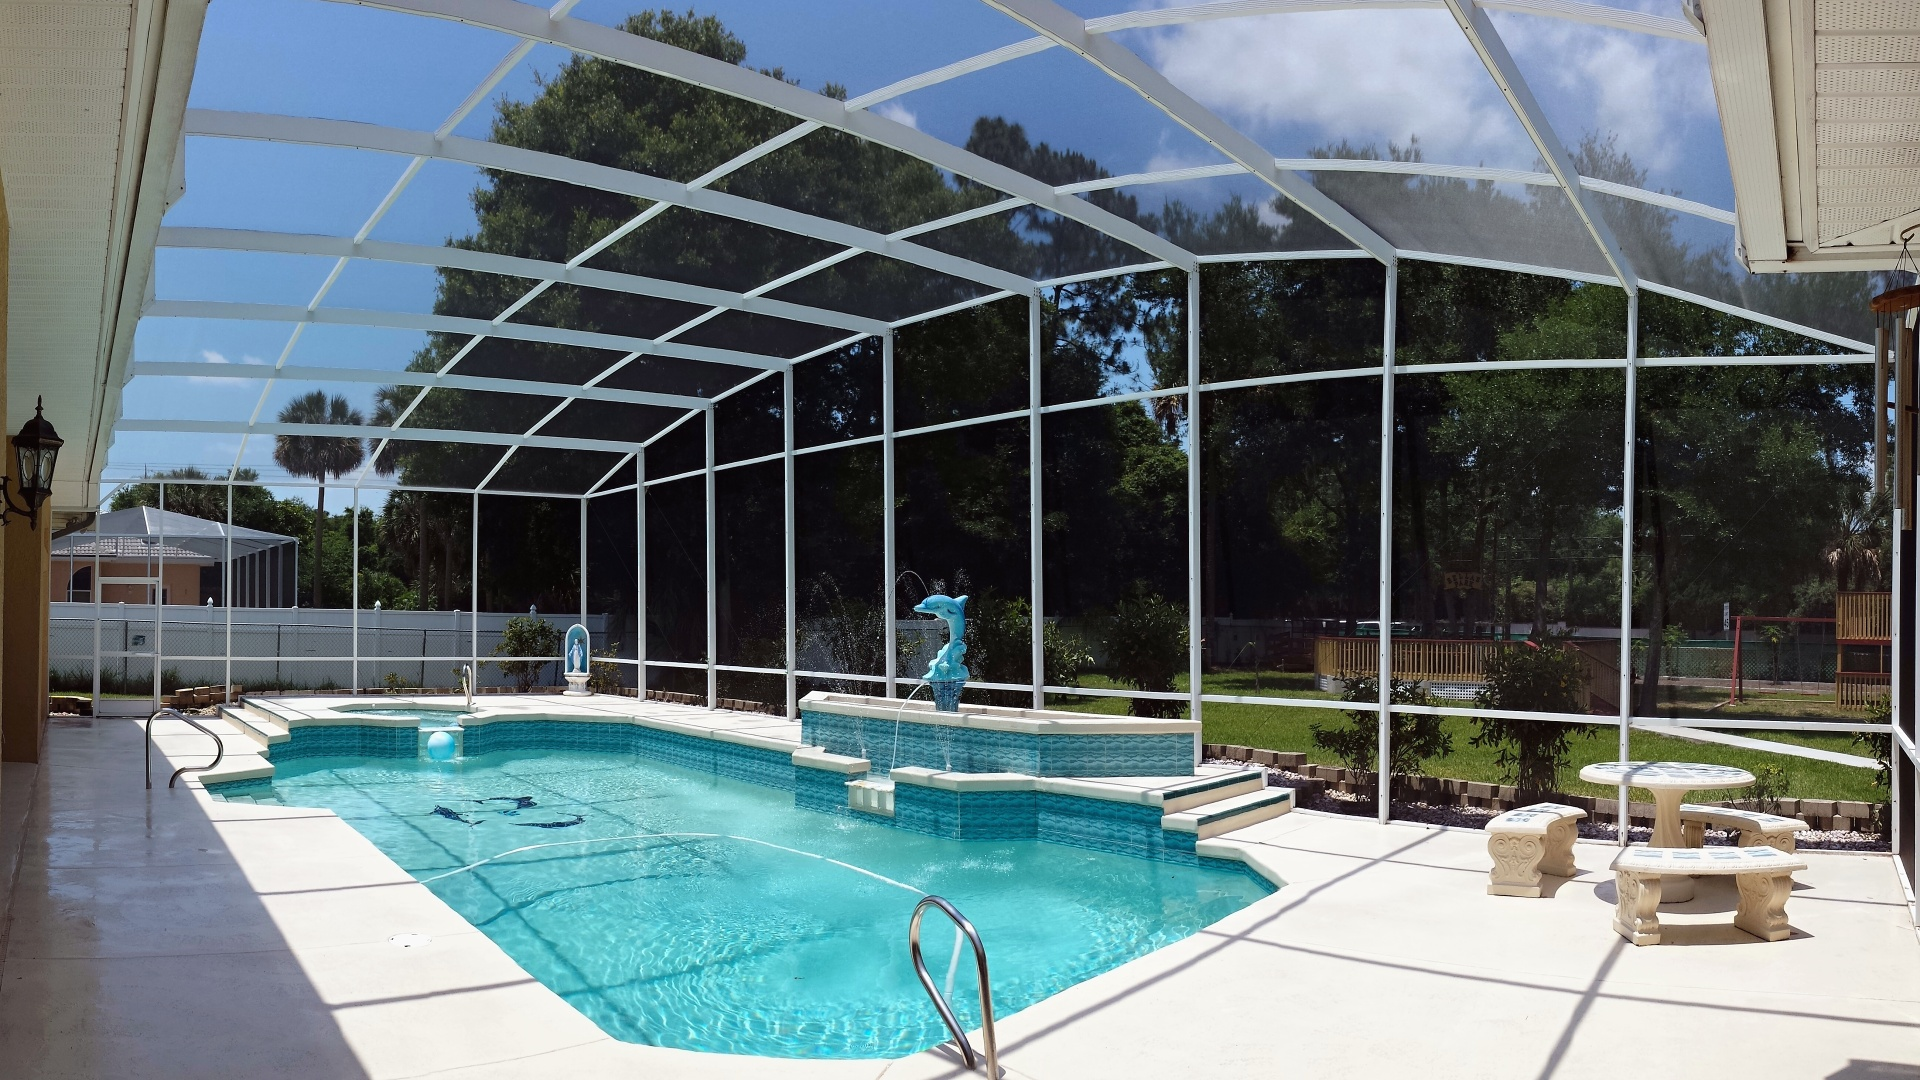 pool-screen-repair-port-orange-06-1080p.jpg